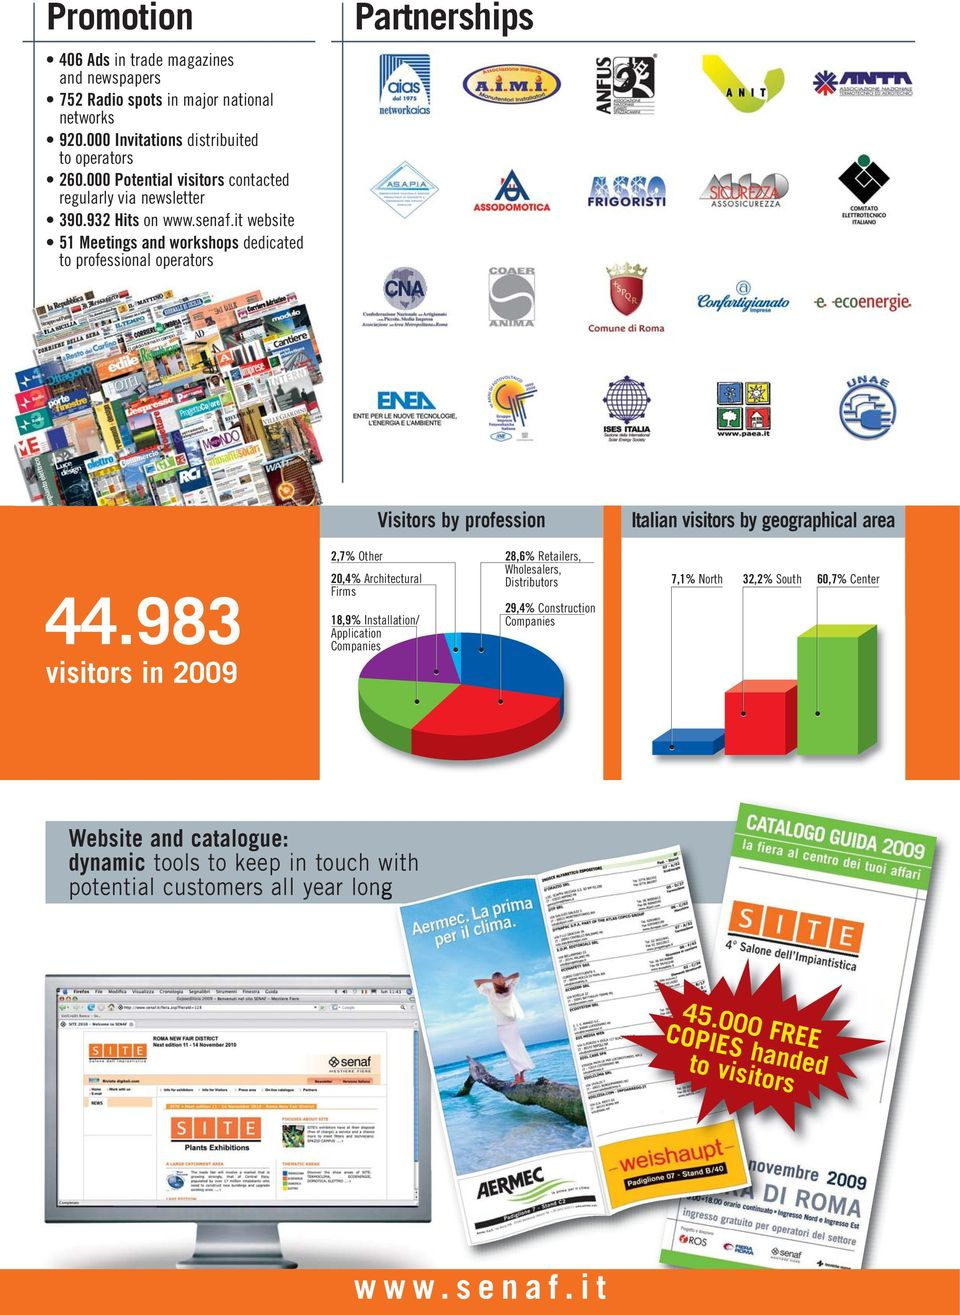 932 Hits on website 51 Meetings and workshops dedicated to professional operators Partnerships Visitors by profession Italian visitors by geographical area 44.